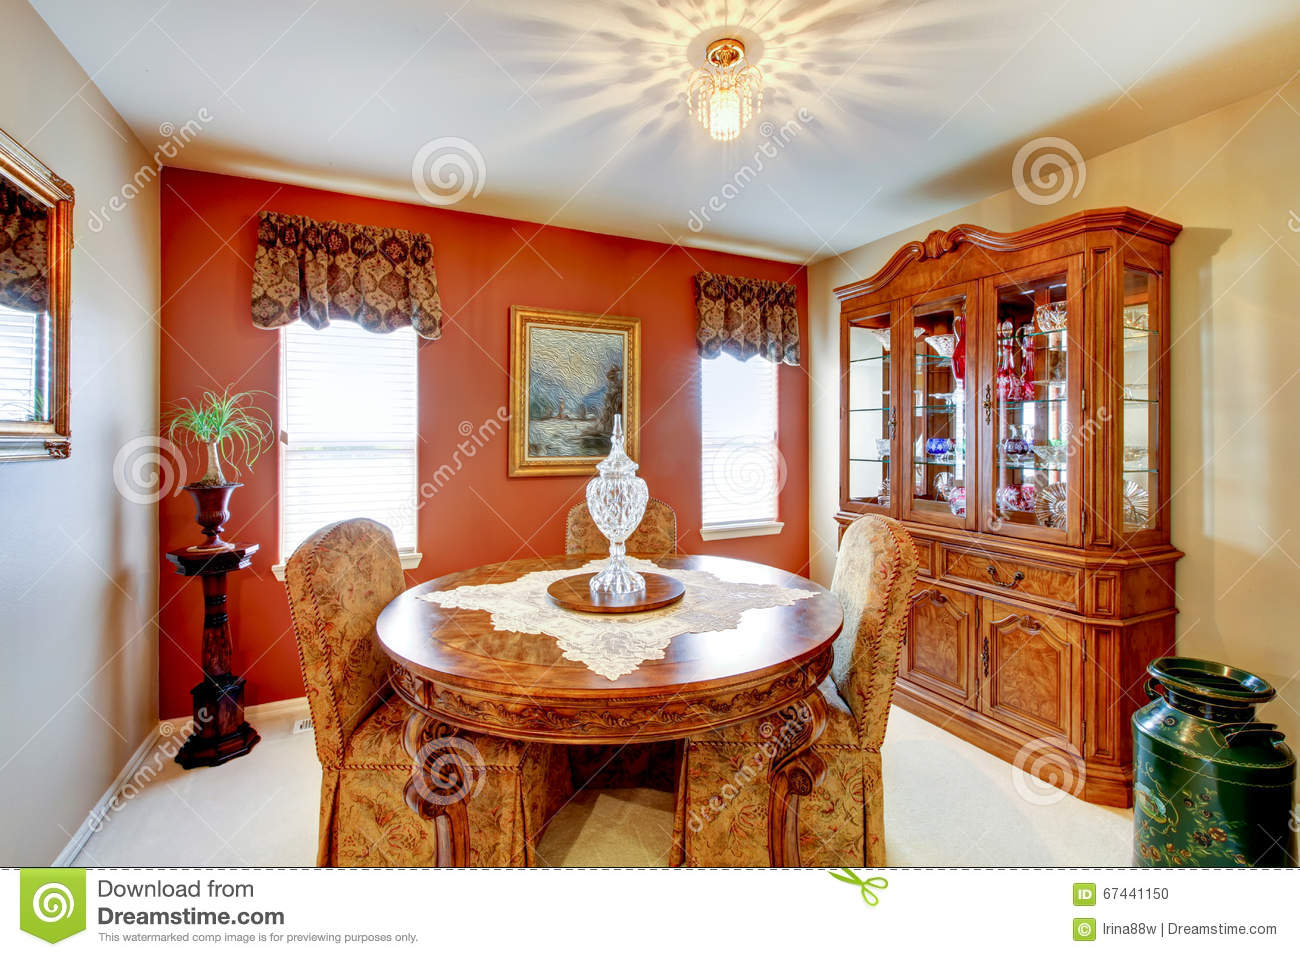 Small Dining Room With Red Accent Wall, And Detailed Old